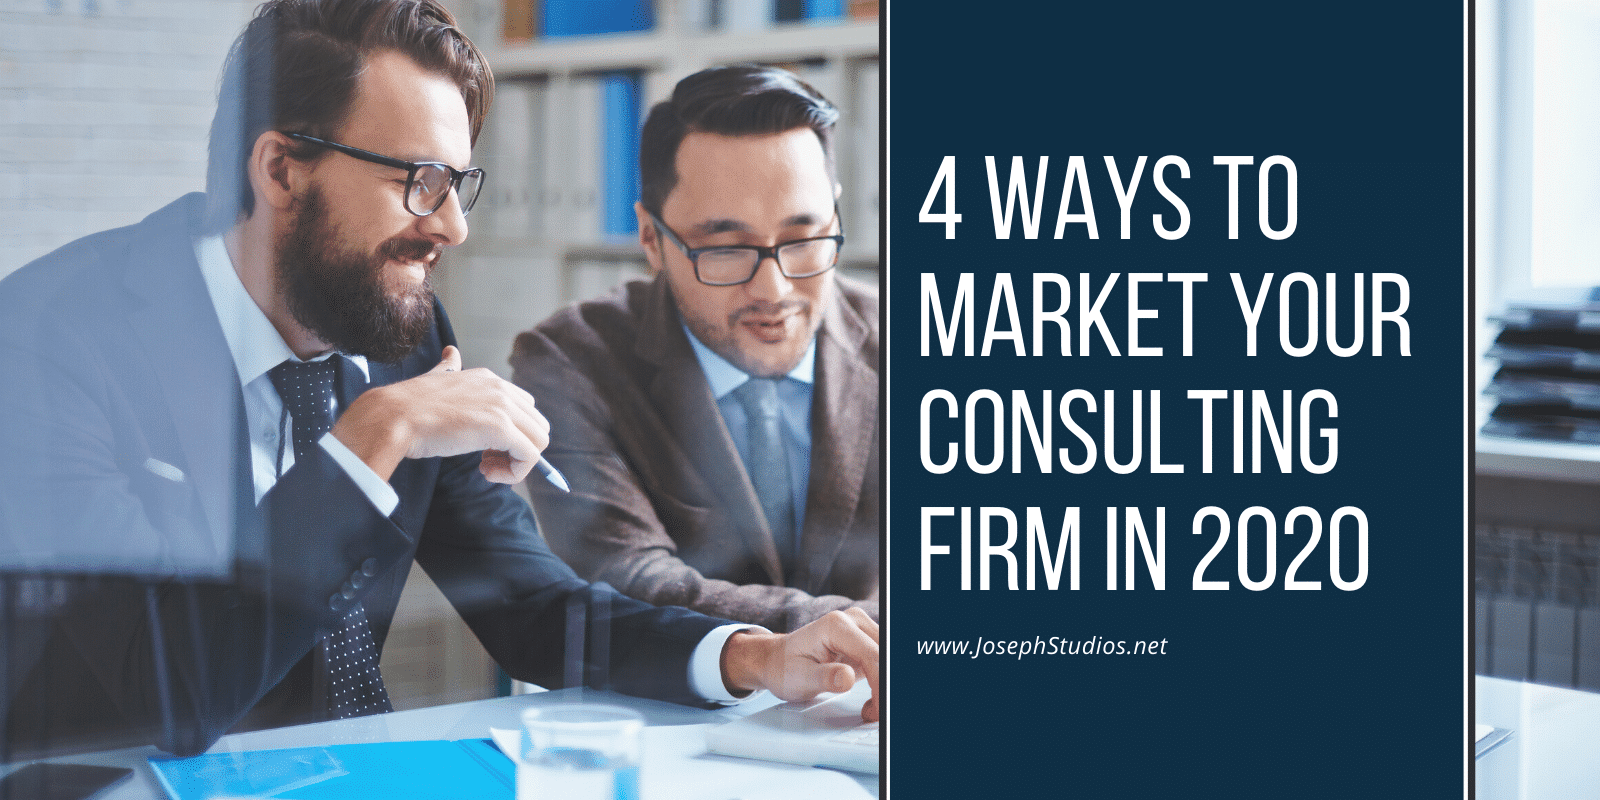 4 Ways To Market Your Consulting Firm In 2020, 4 Ways To Market Your Consulting Firm In 2020